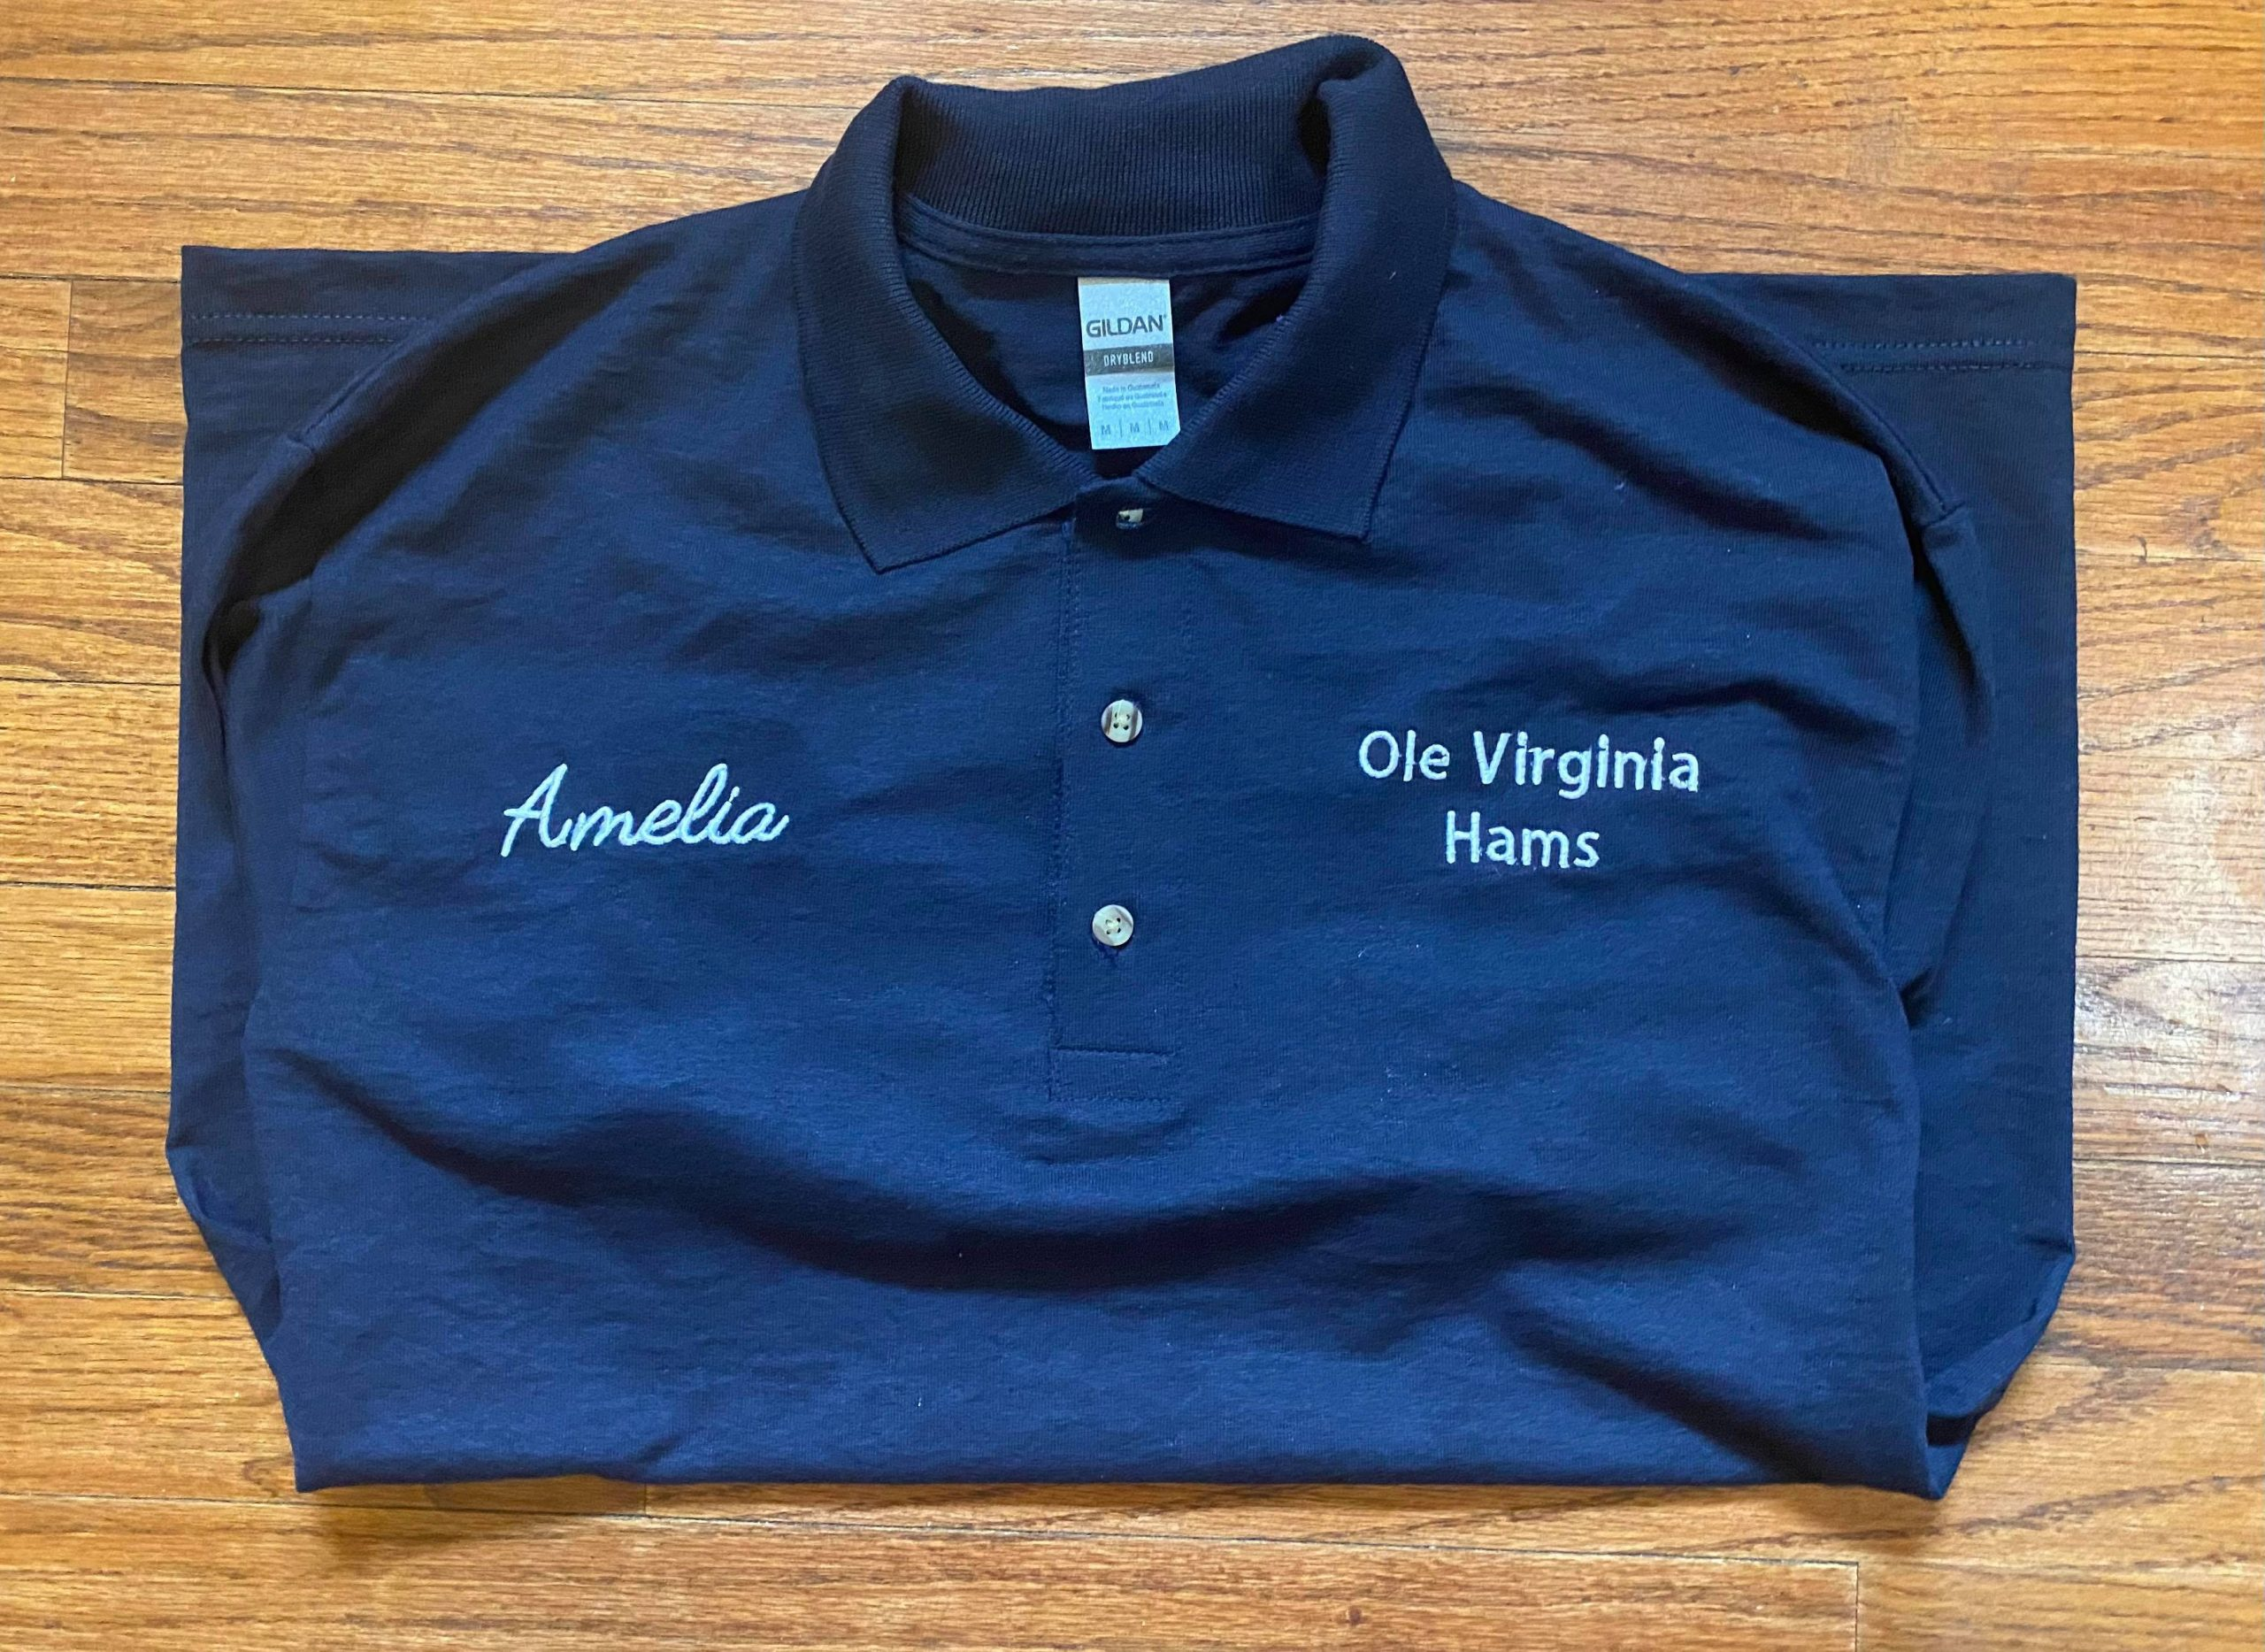 Embroidered polo shirt presented to Amelia Powell of Parks and Recreation division of Manassas Park